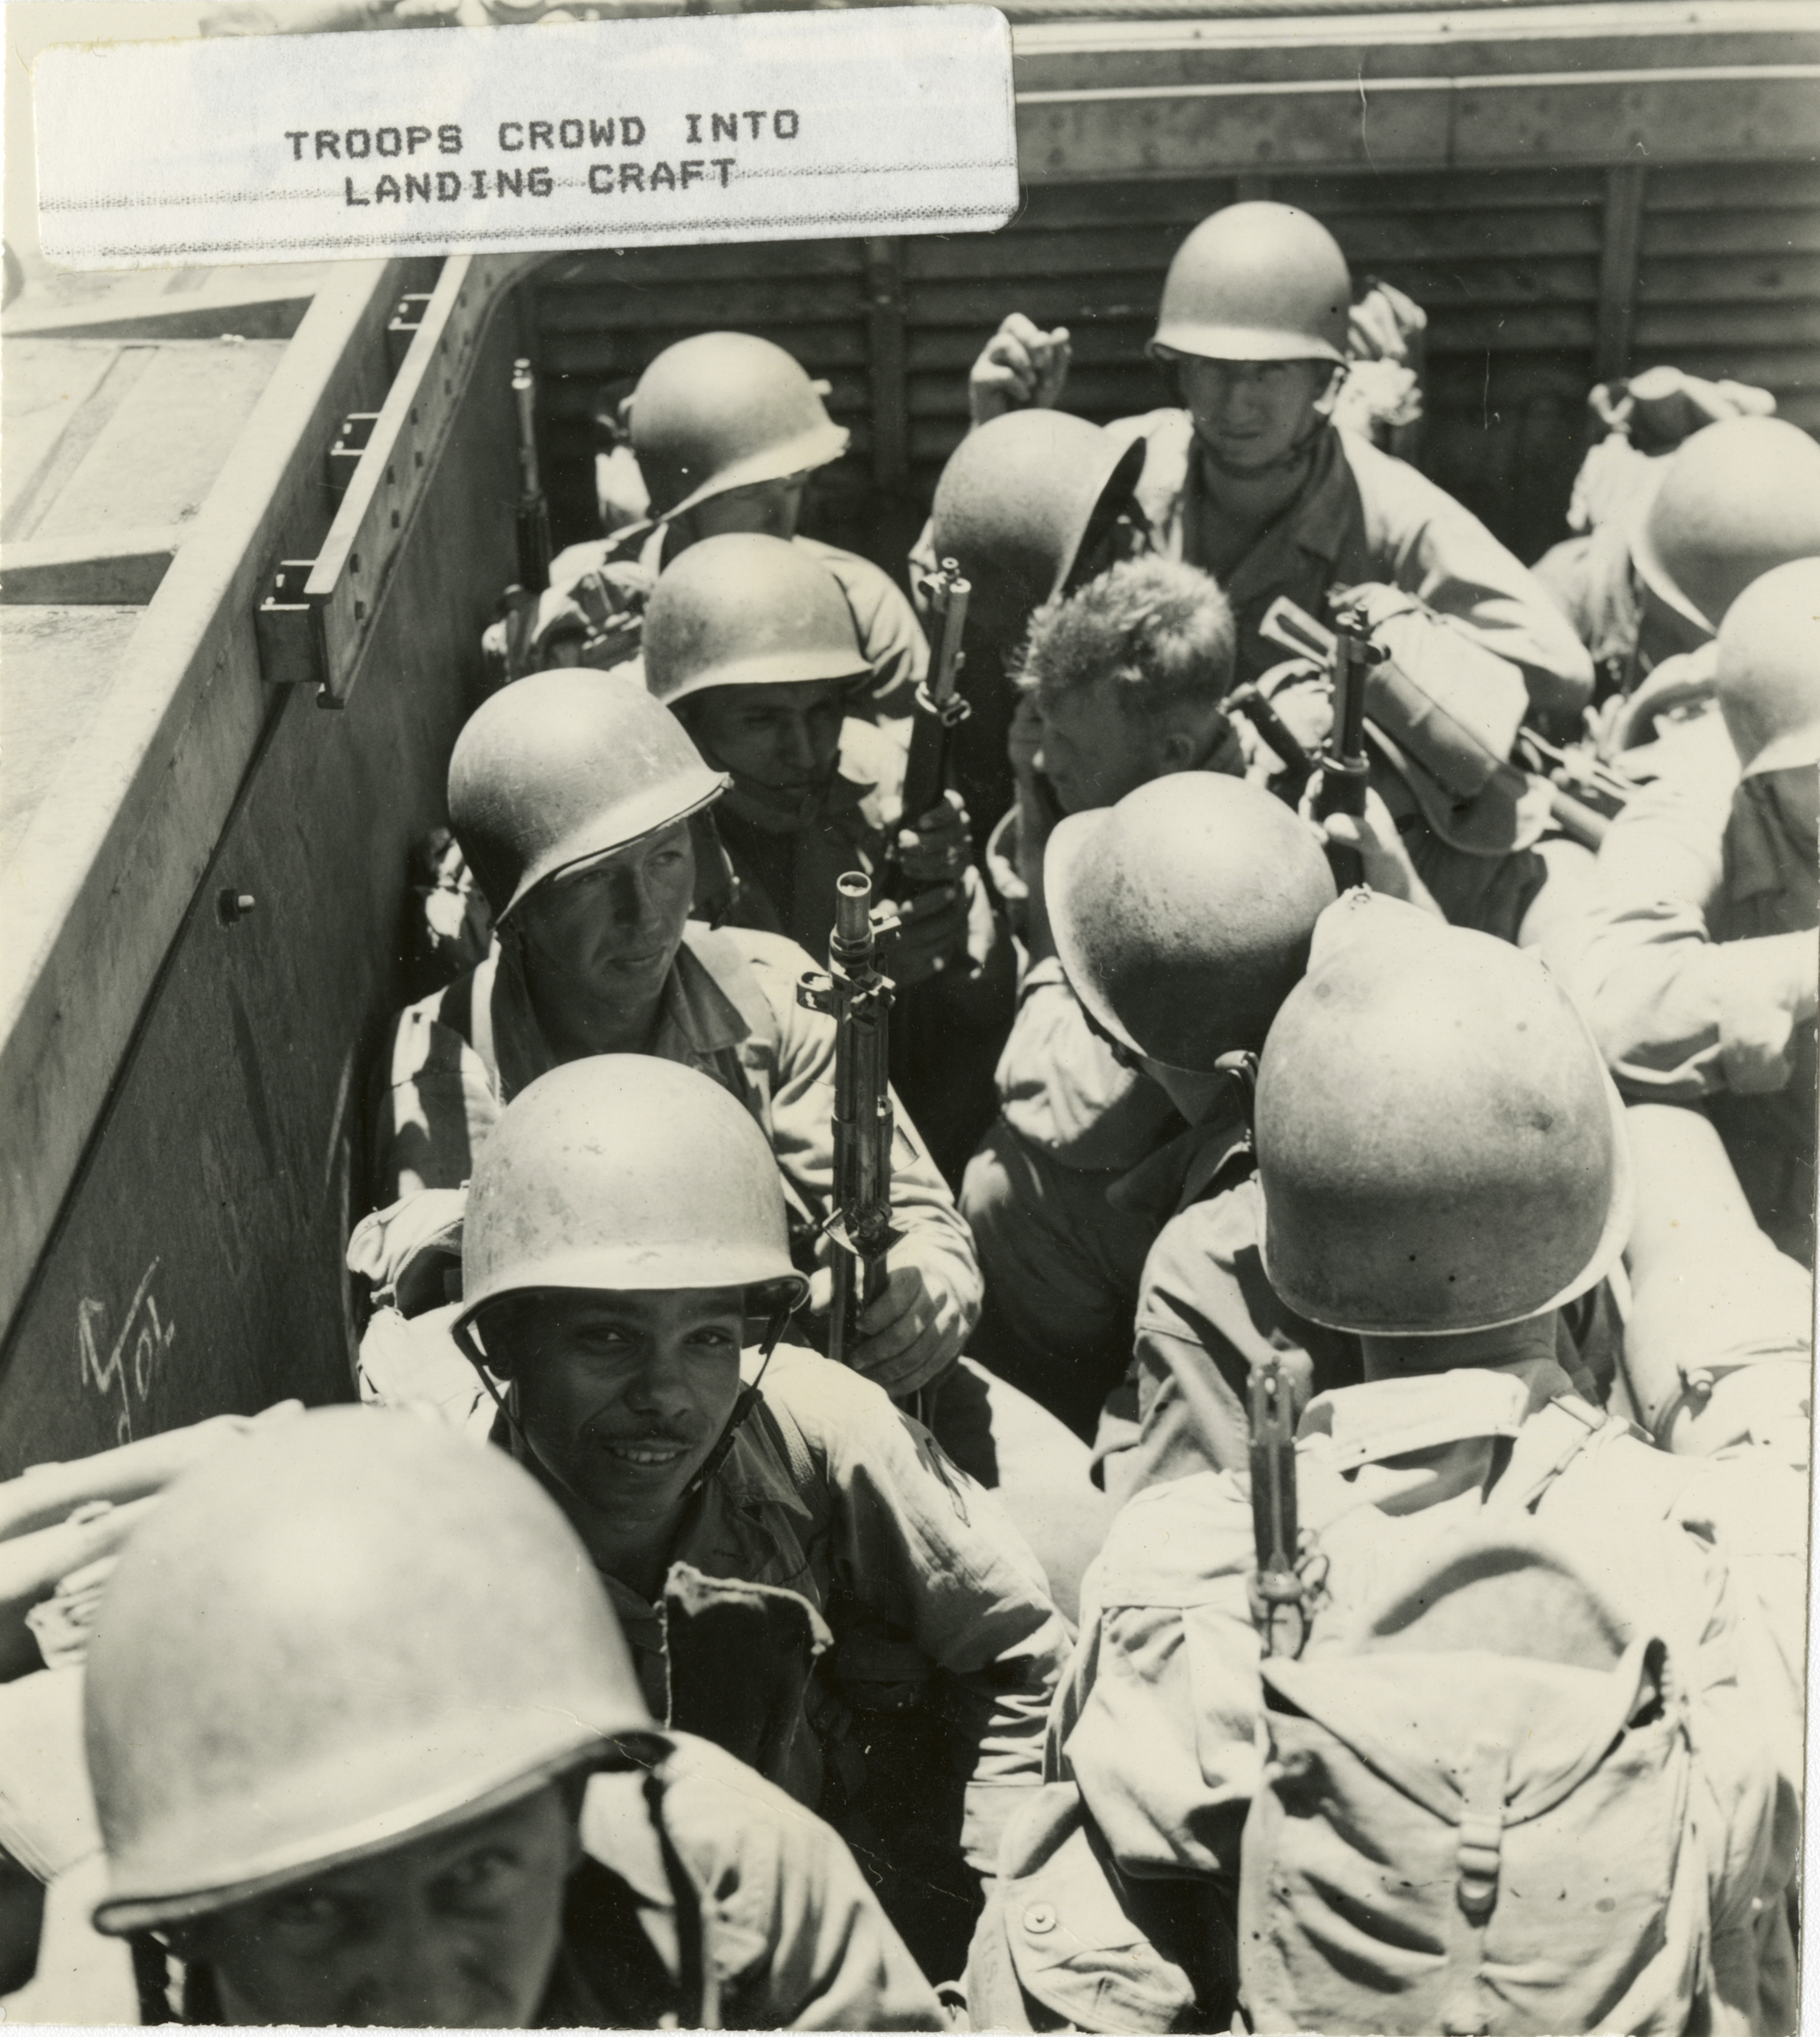 Soldiers of the 40th Infantry Division crowded into an LCVP